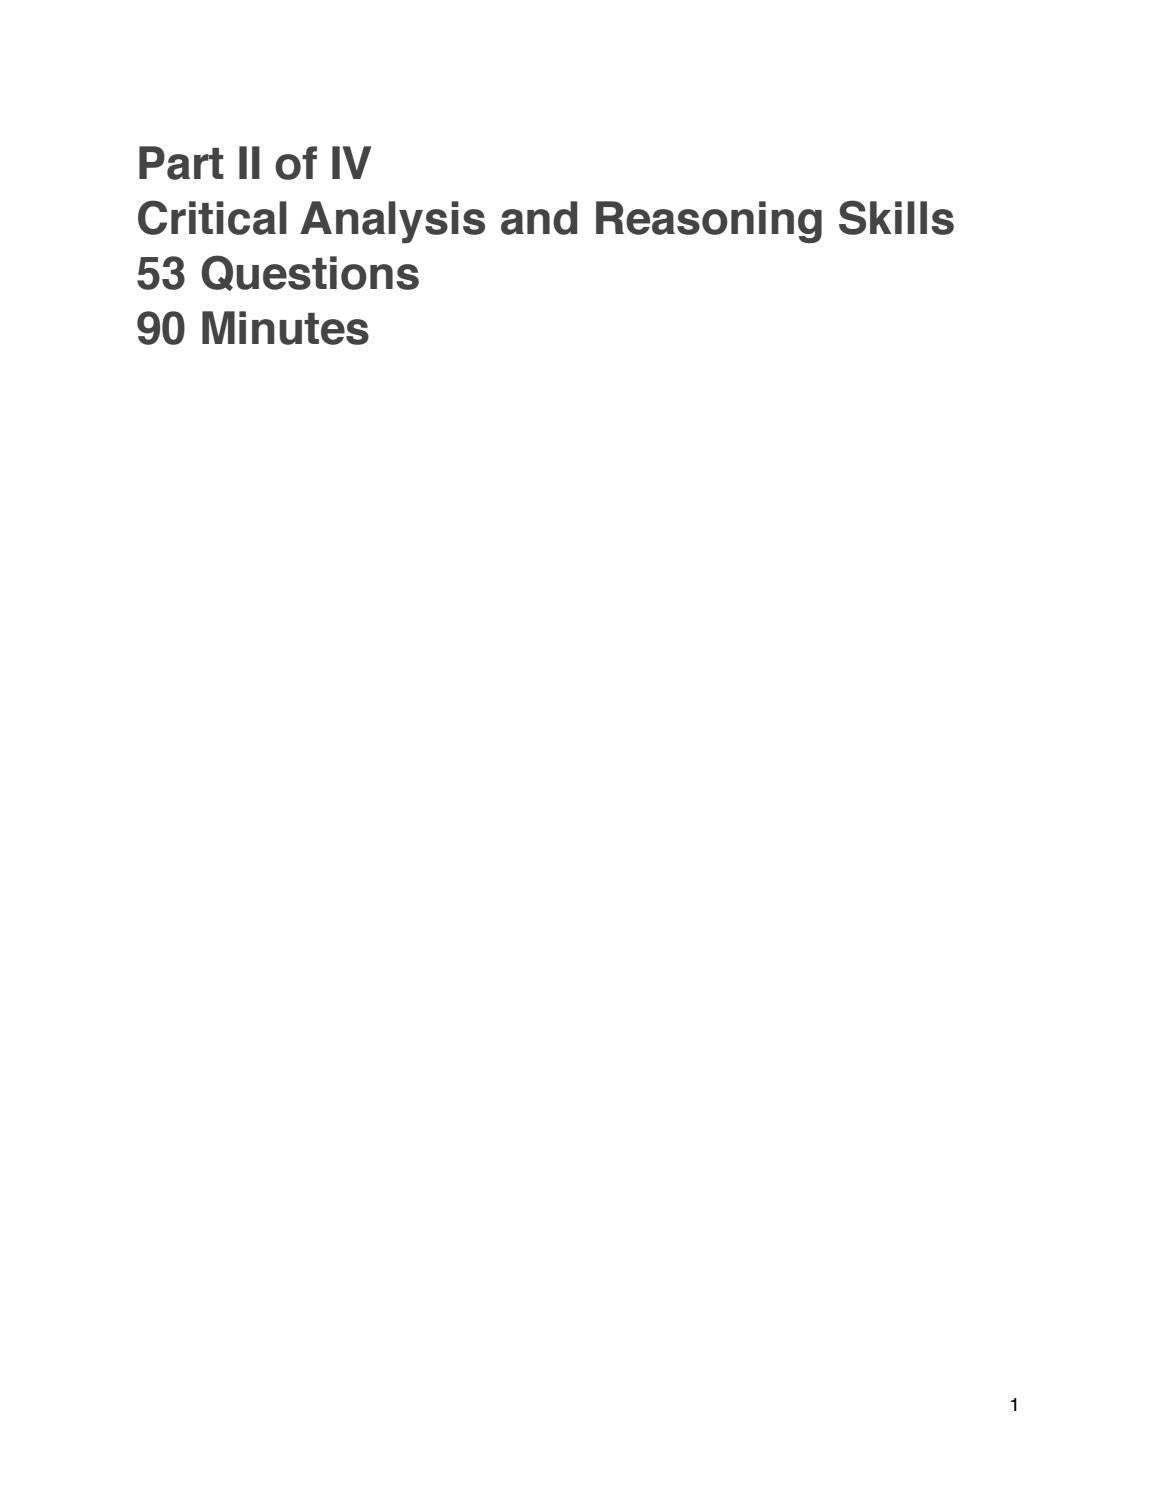 Free Practice Mcat 2 Section 2 Critical Reasoning And Analysis